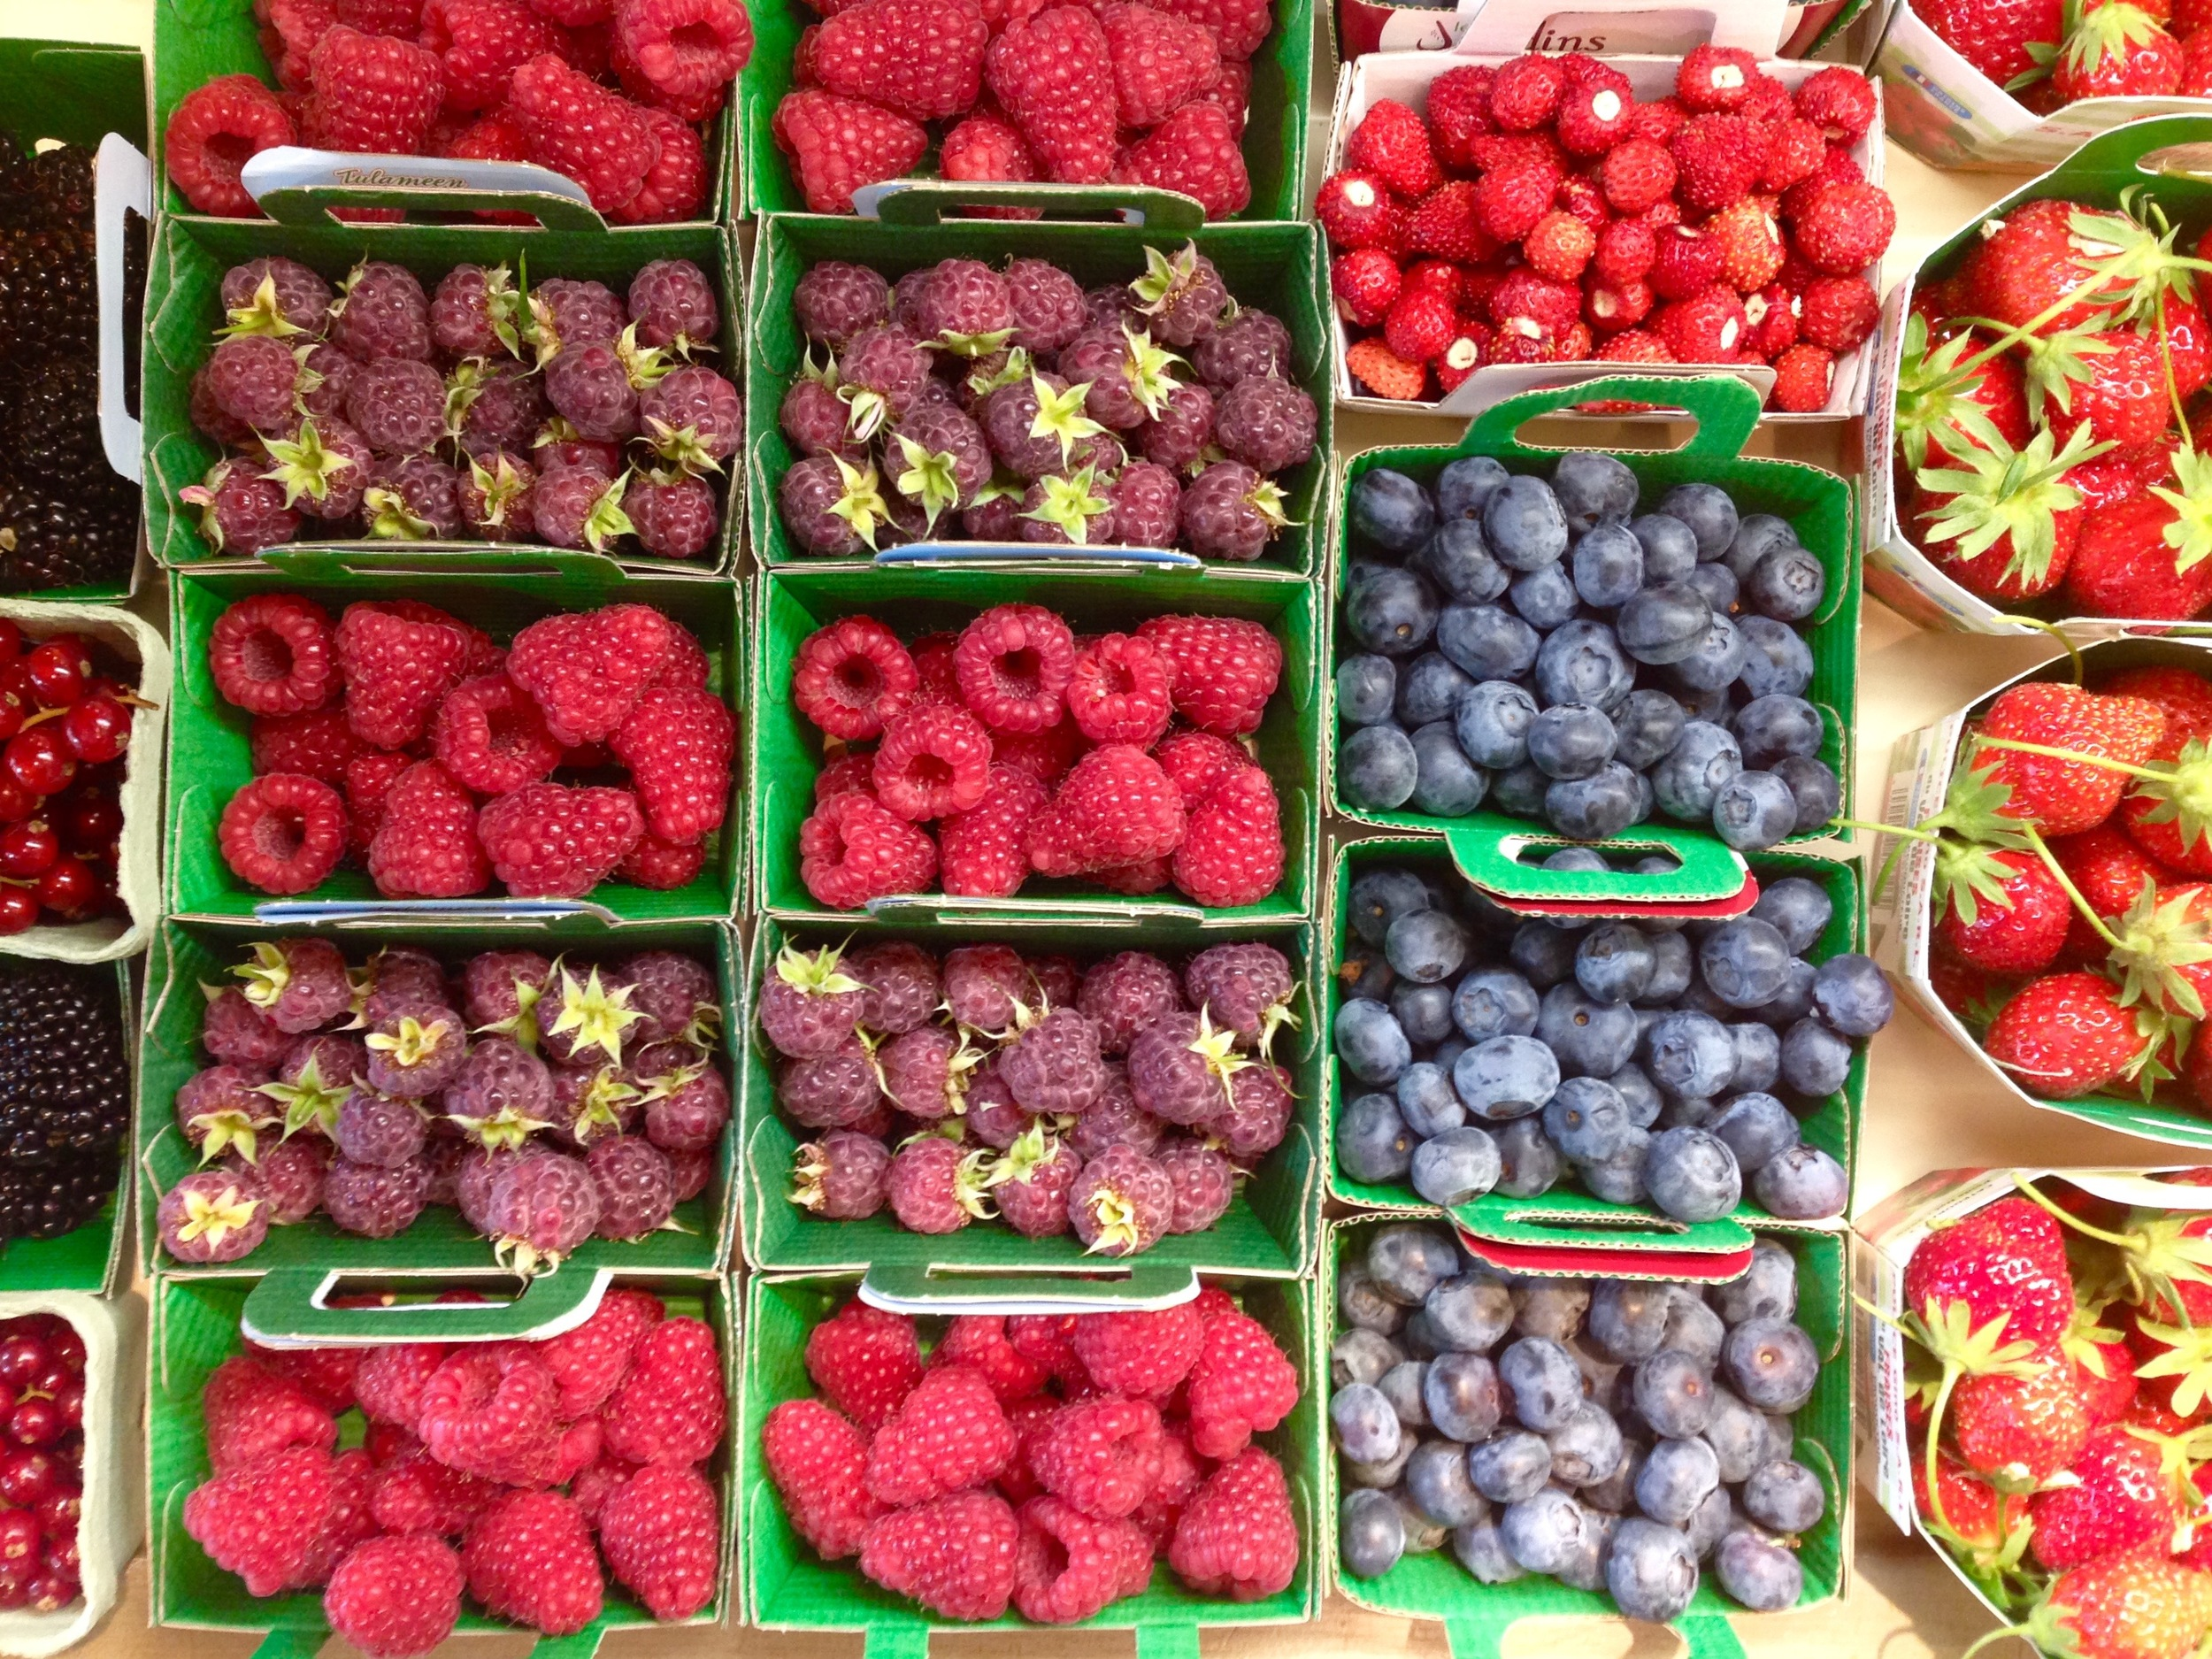 A Selection of Summer Berries at the Market